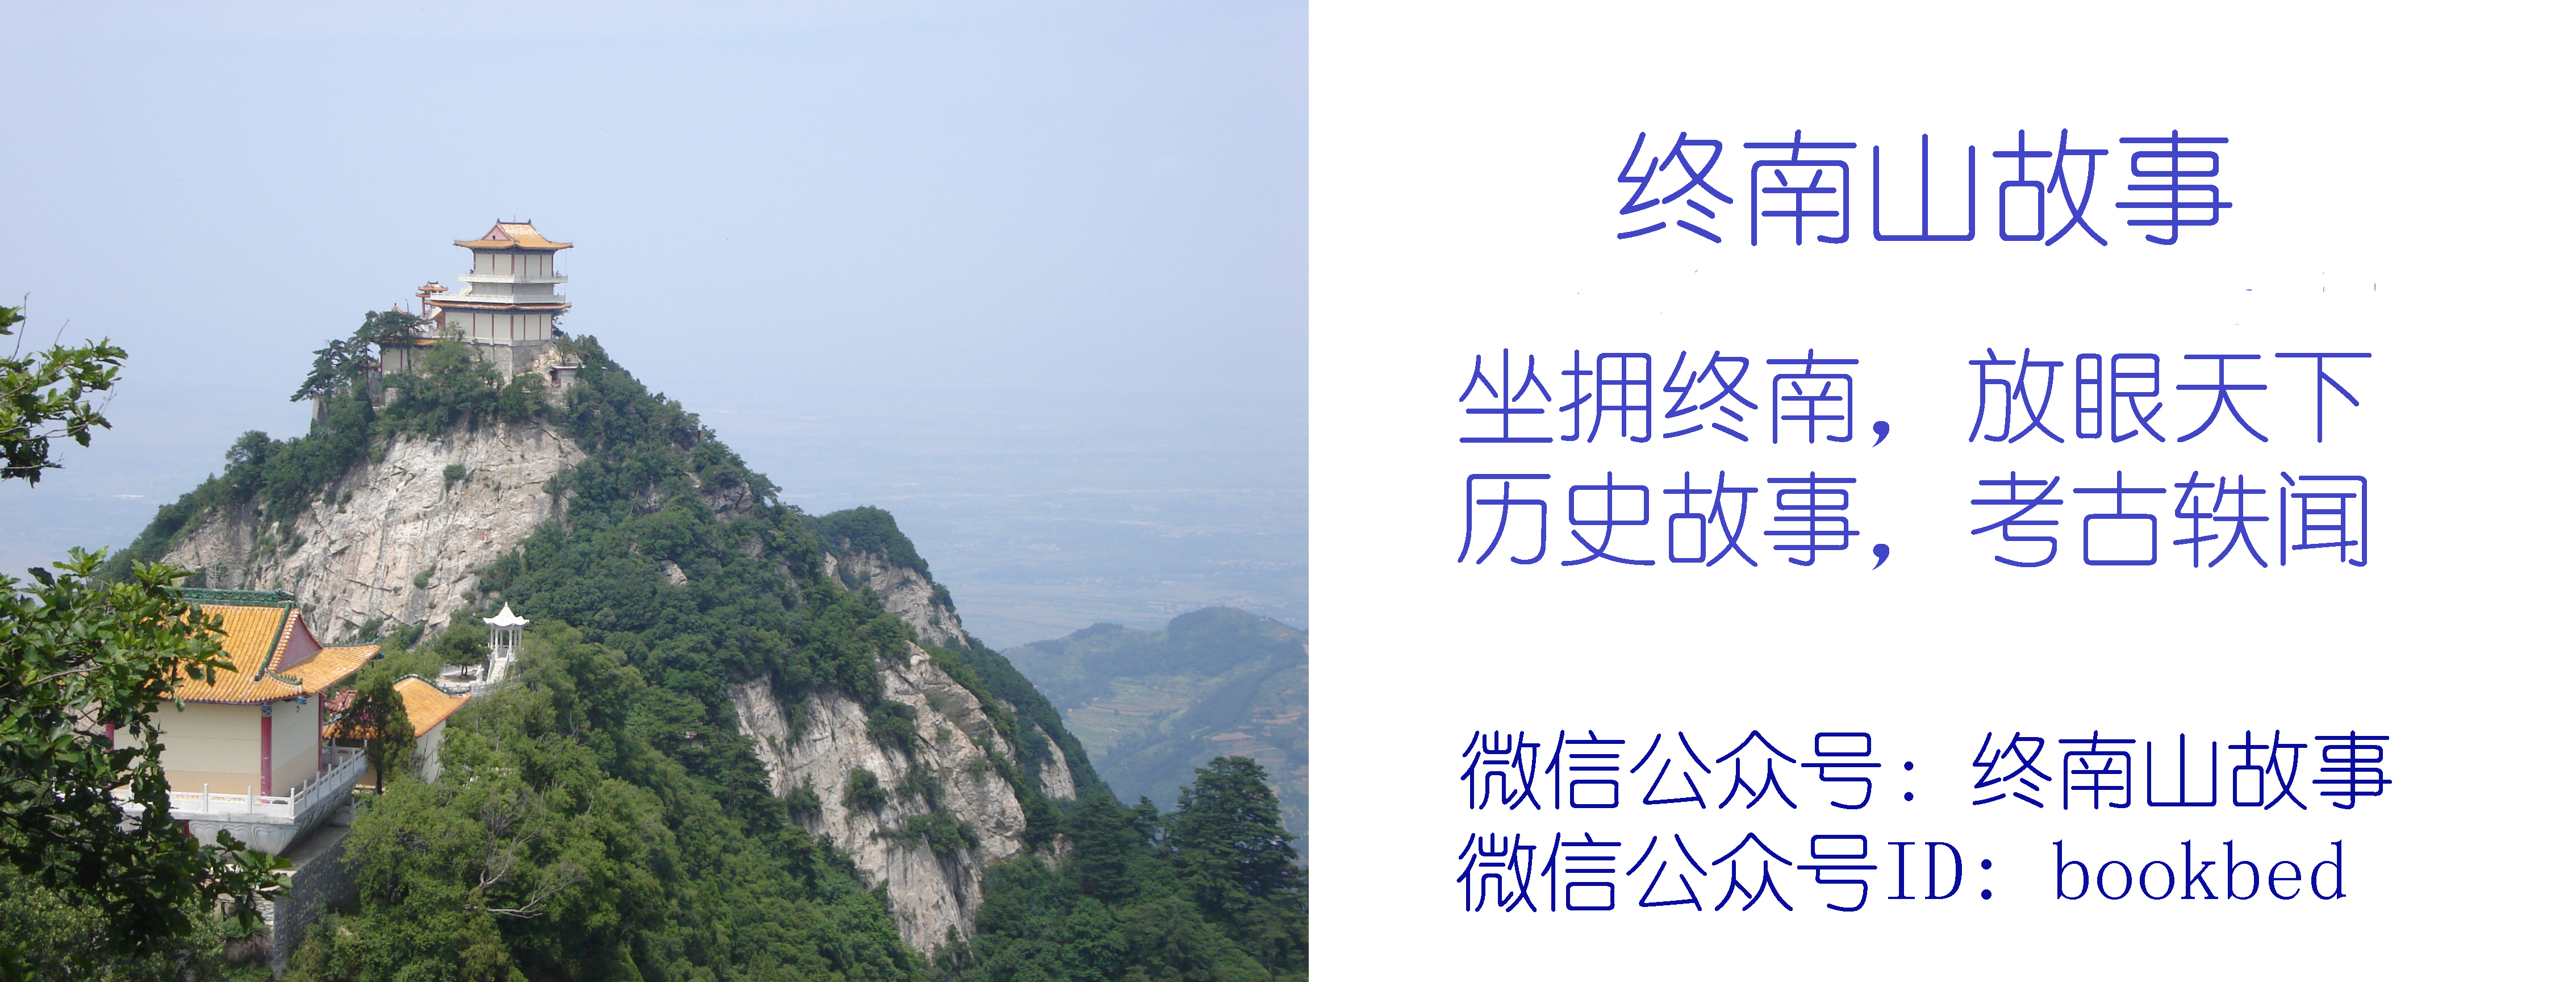 betway必威登录入口 7